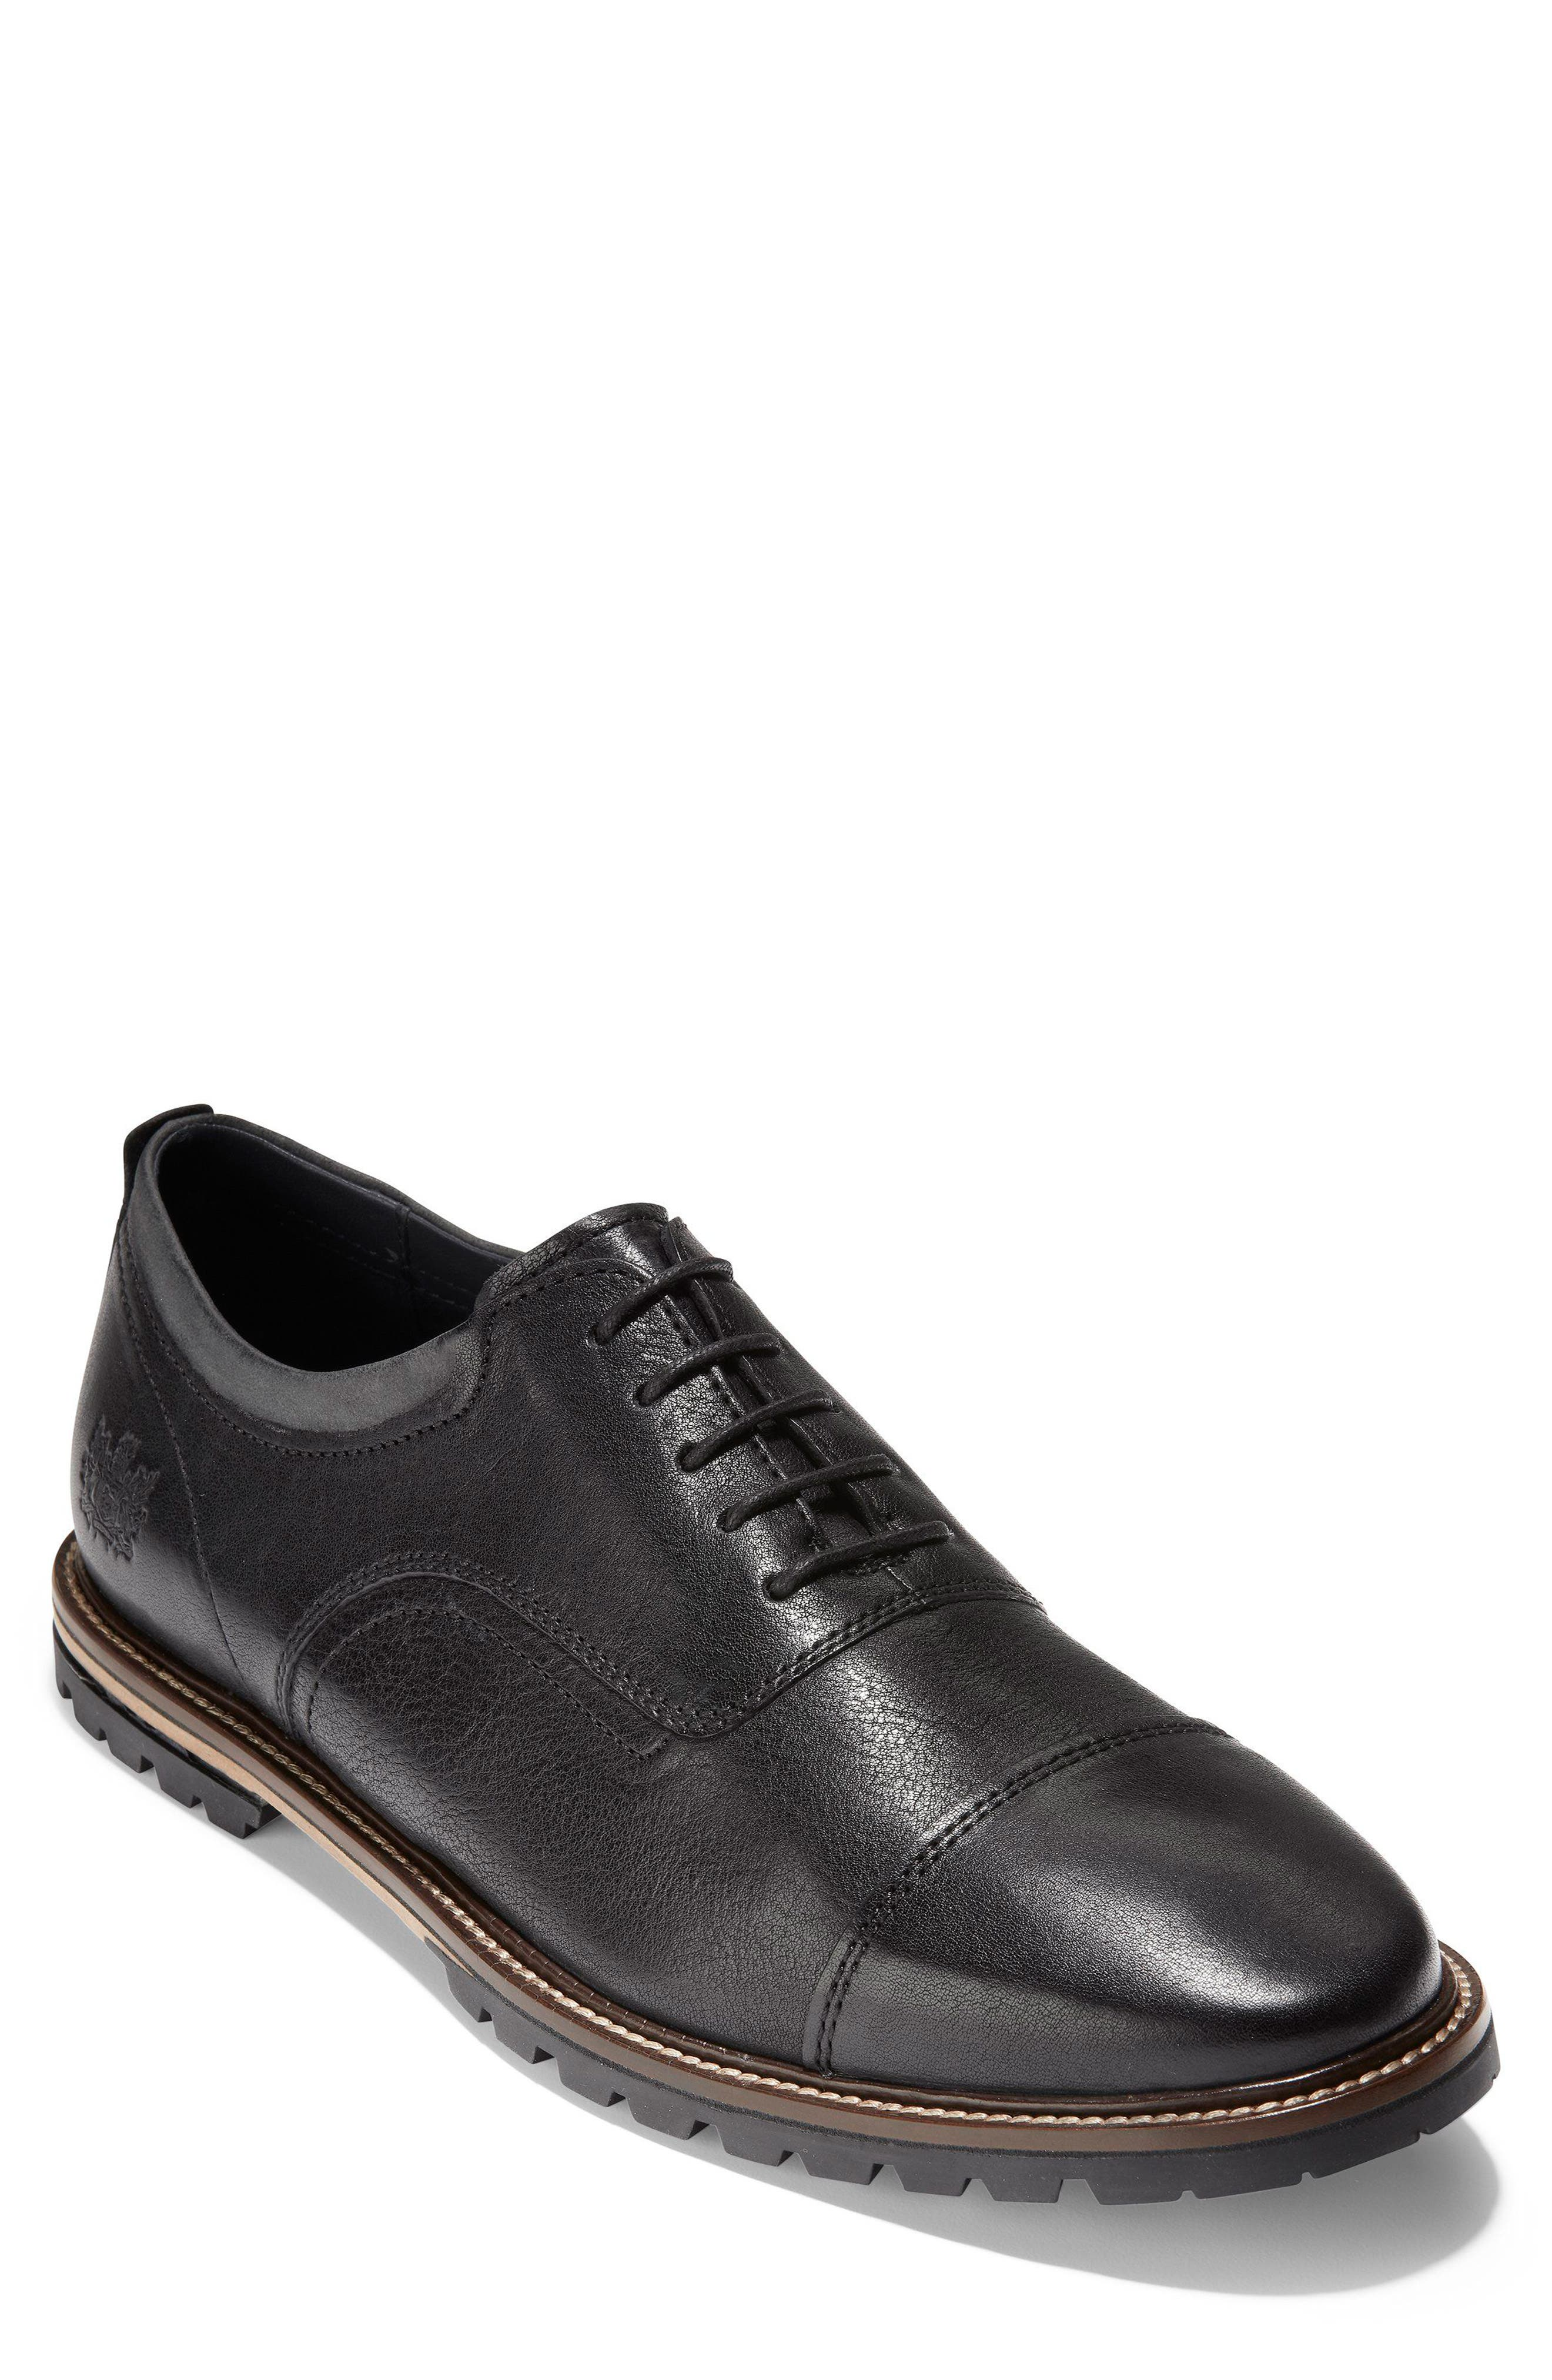 Richardson Cap Toe Derby,                             Main thumbnail 1, color,                             BLACK LEATHER